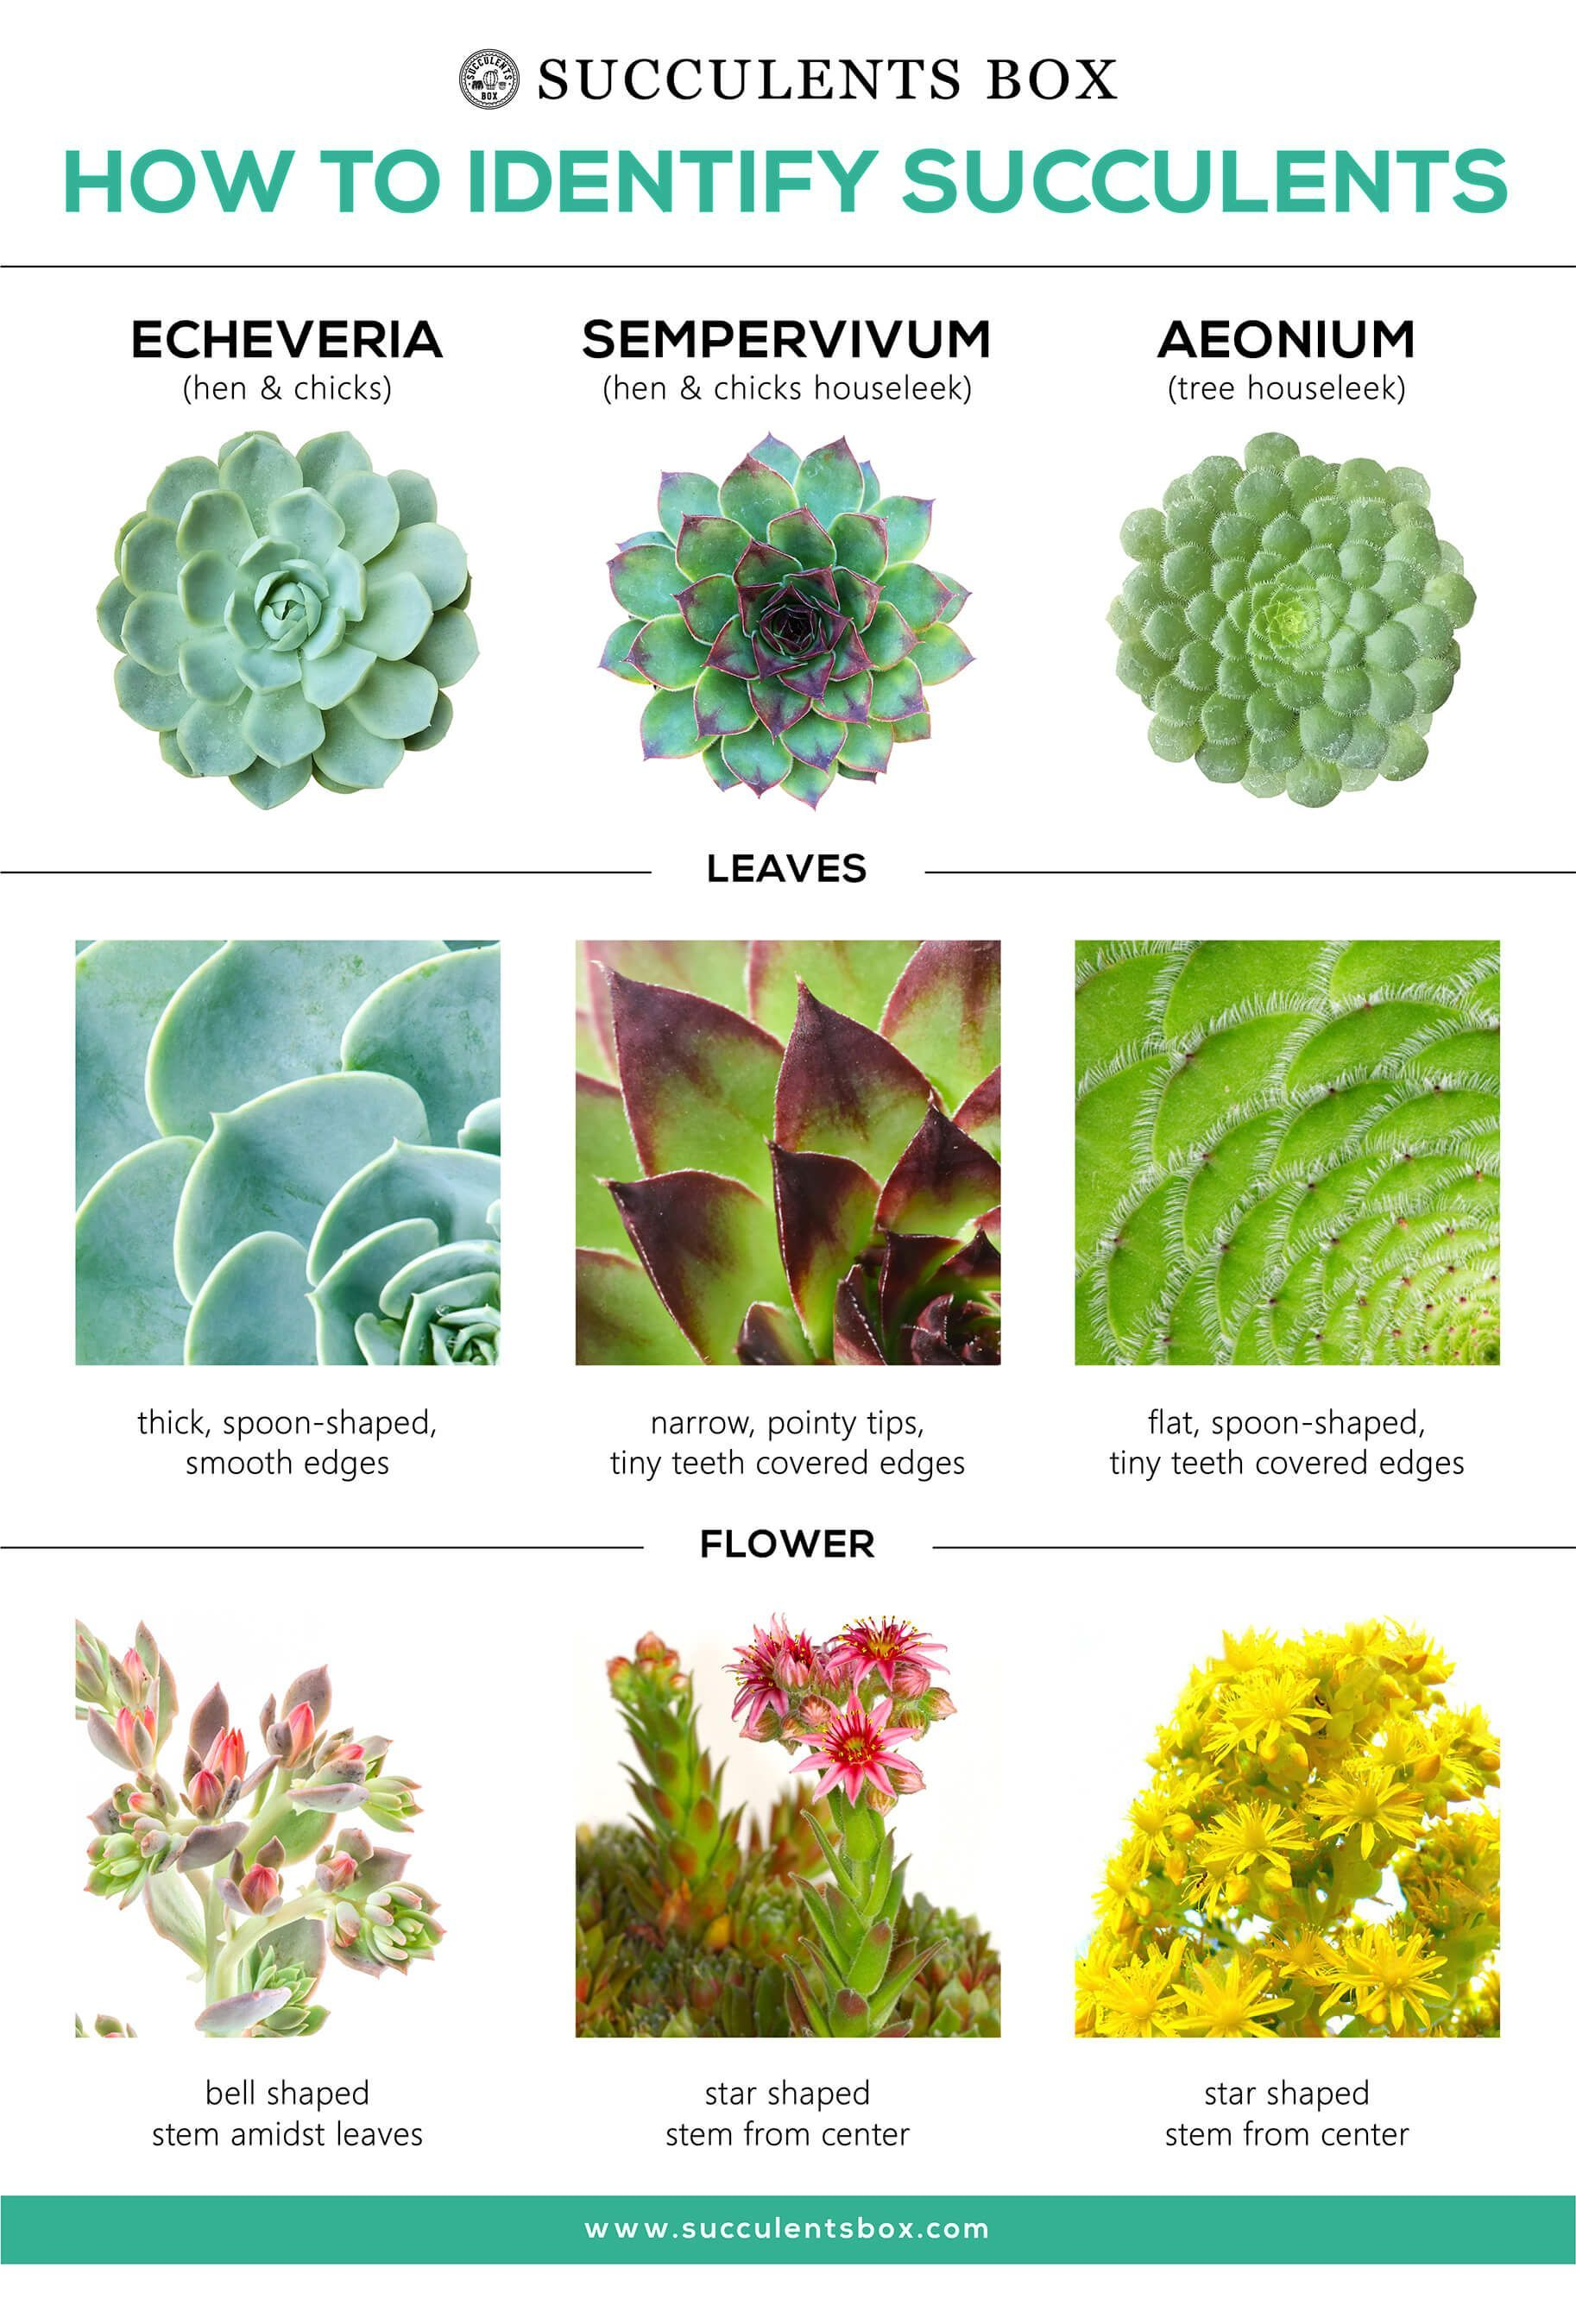 How To Identify Different Types Of Succulents Part I Echeveria